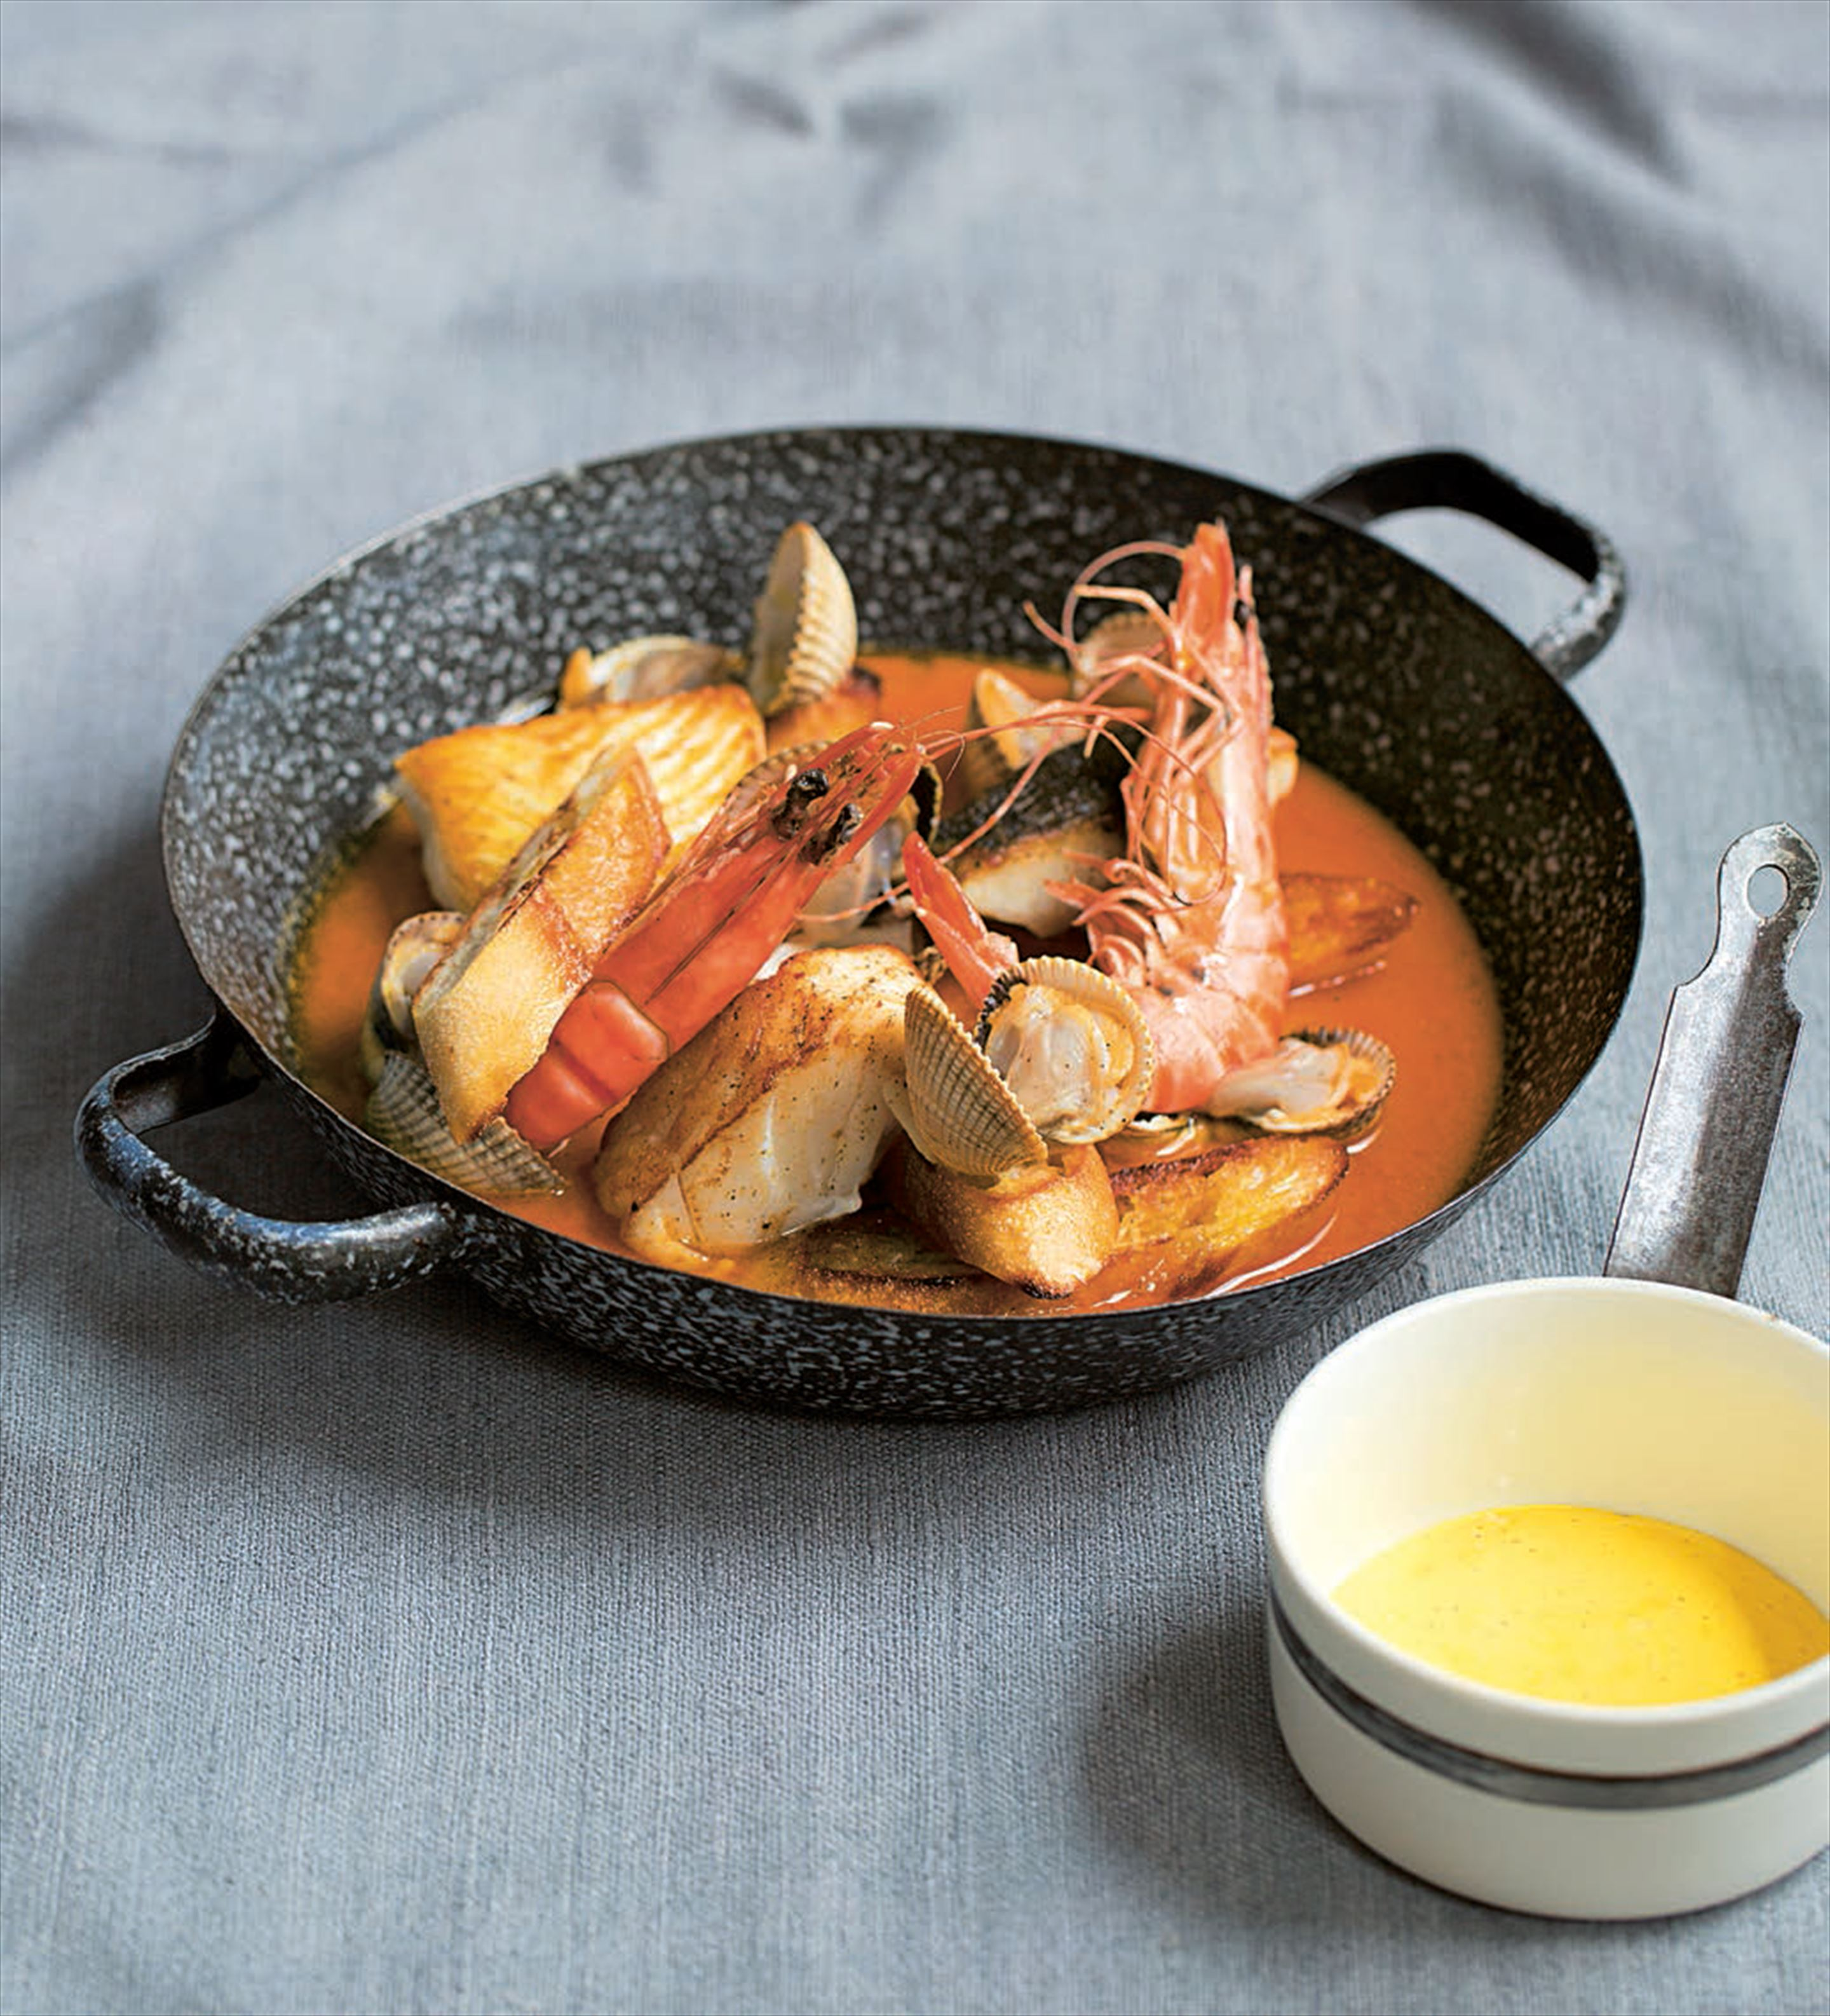 Cornish fish stew with garlic toast and aïoli